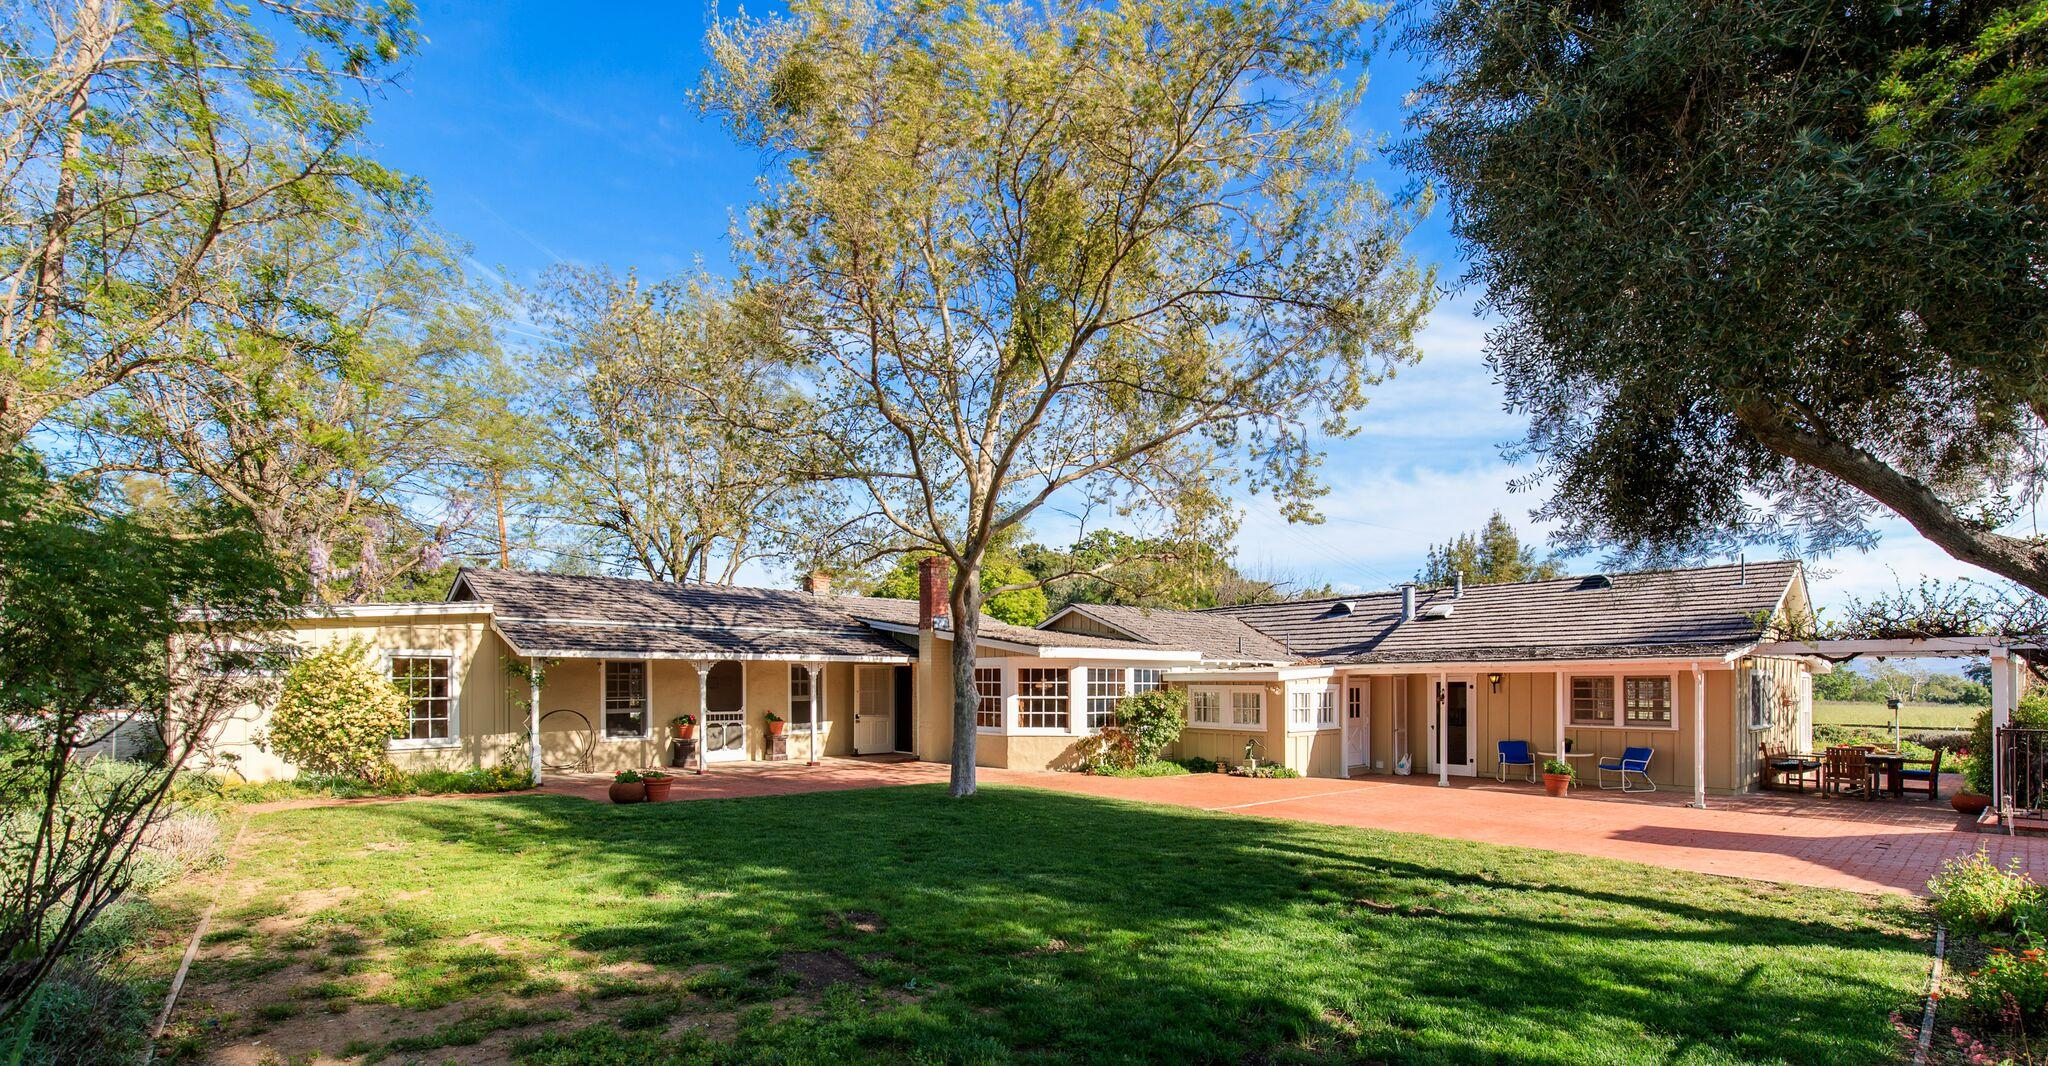 Property photo for 2411 Alamo Pintado Rd Los Olivos, California 93441 - 17-1690